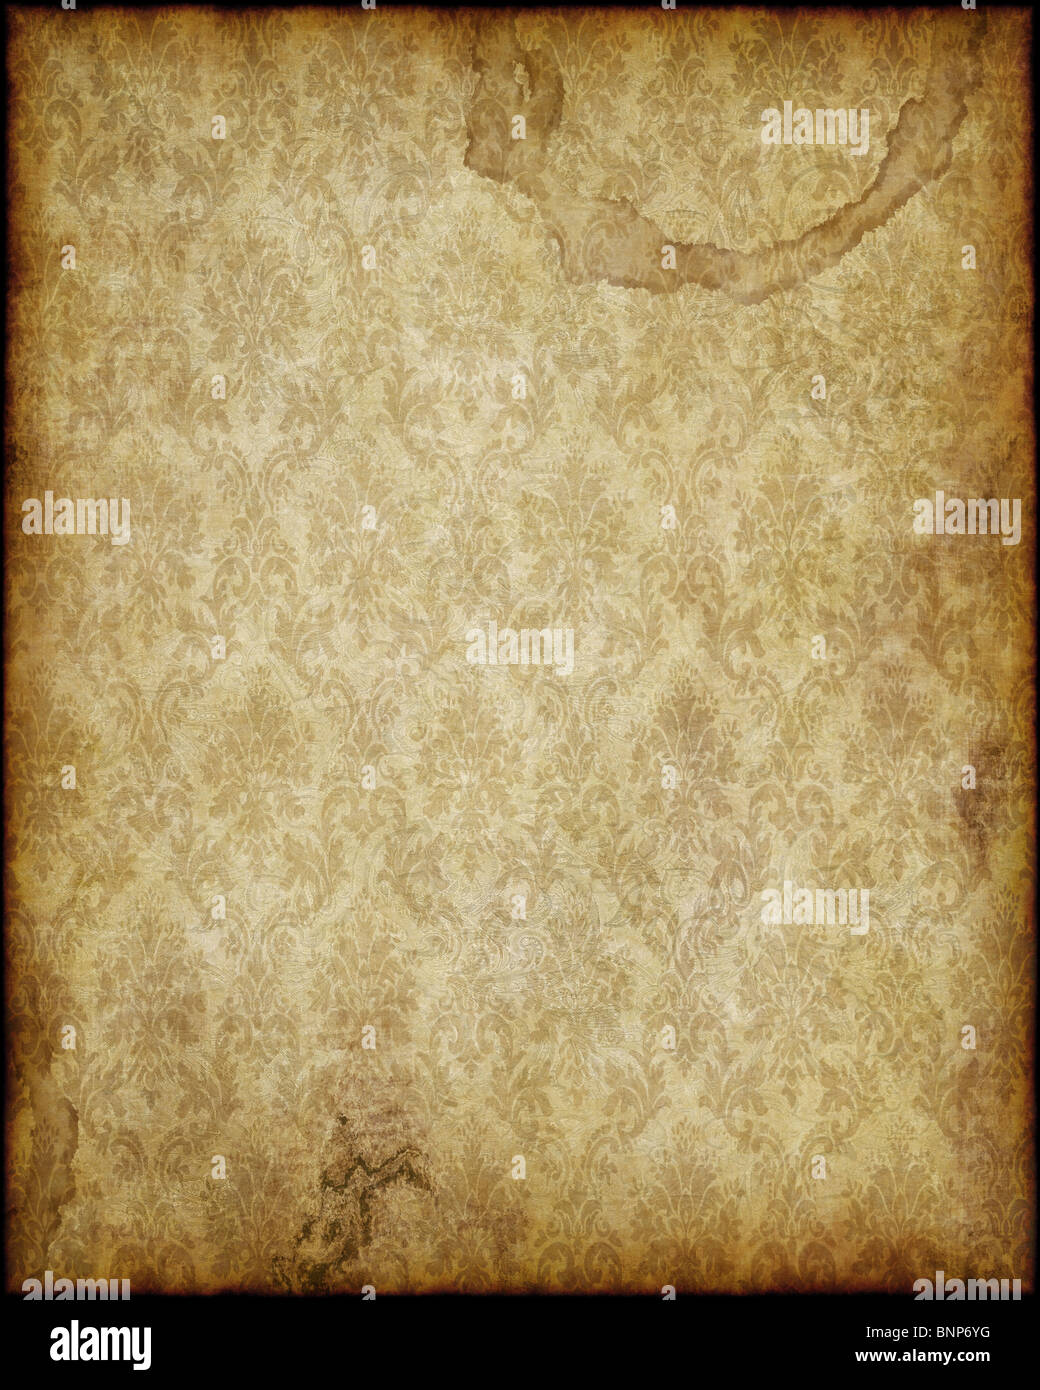 old worn parchment paper background texture image stock